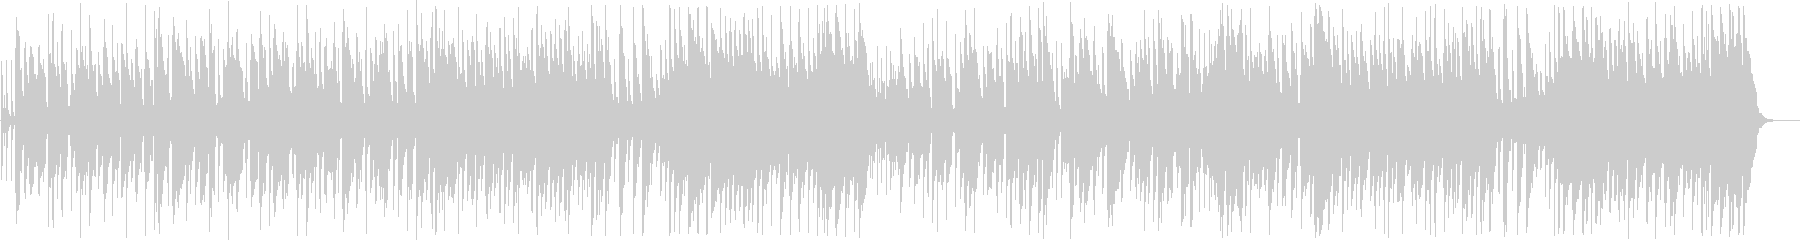 Funny information music's unreproduced waveform